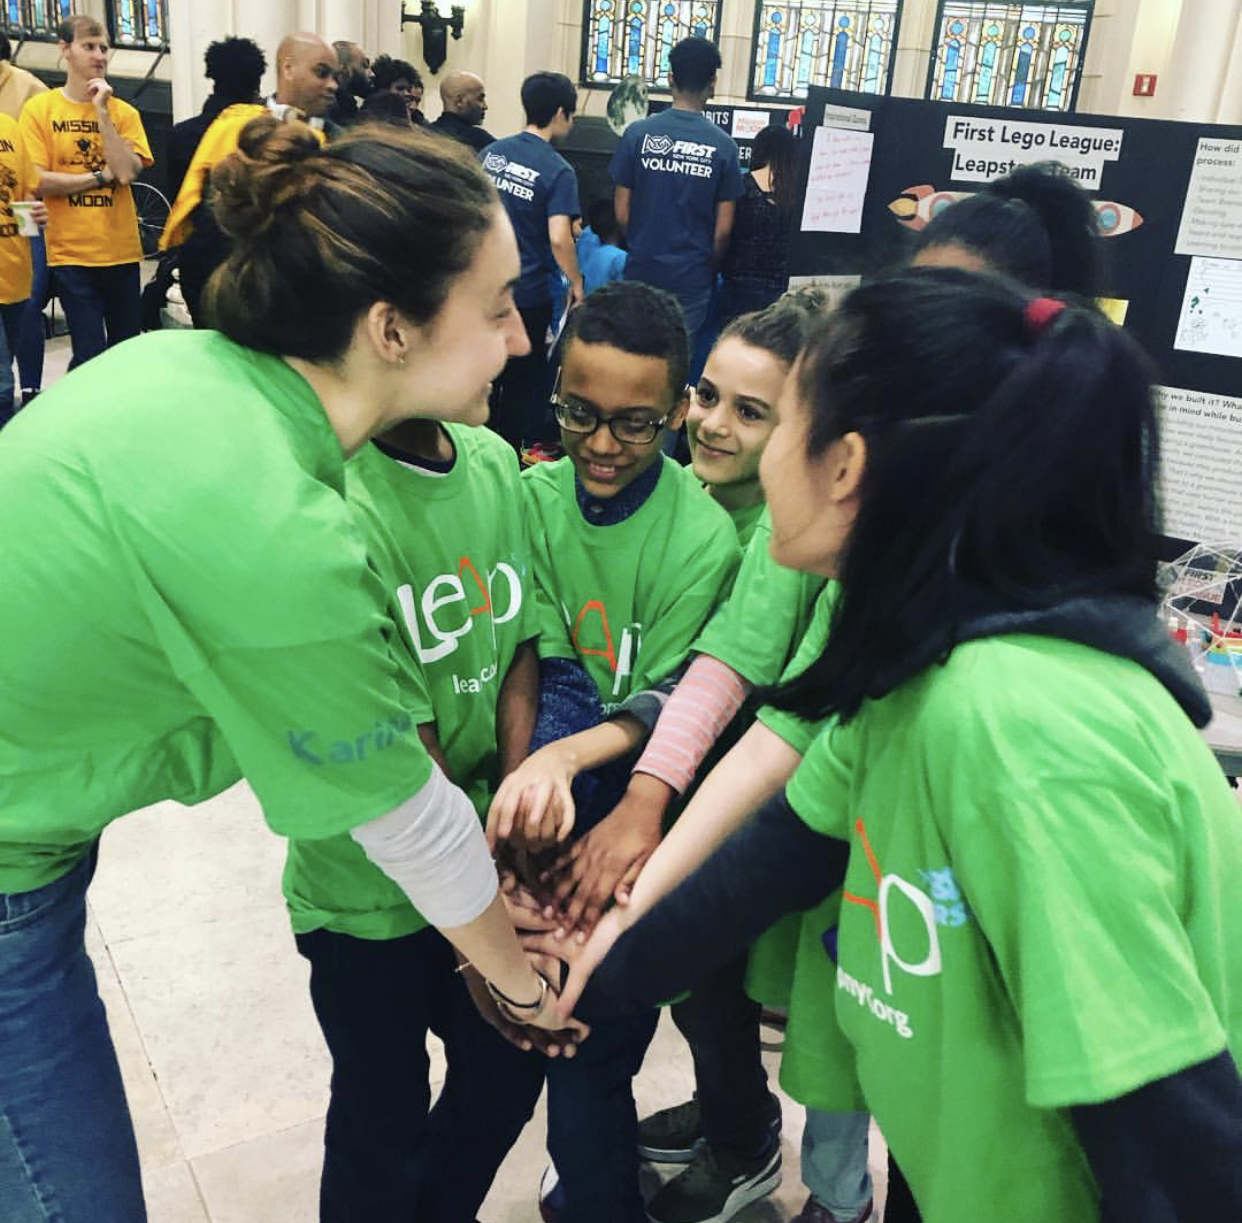 Karina coaching her robotics team. (Courtesy of Karina Popovich)